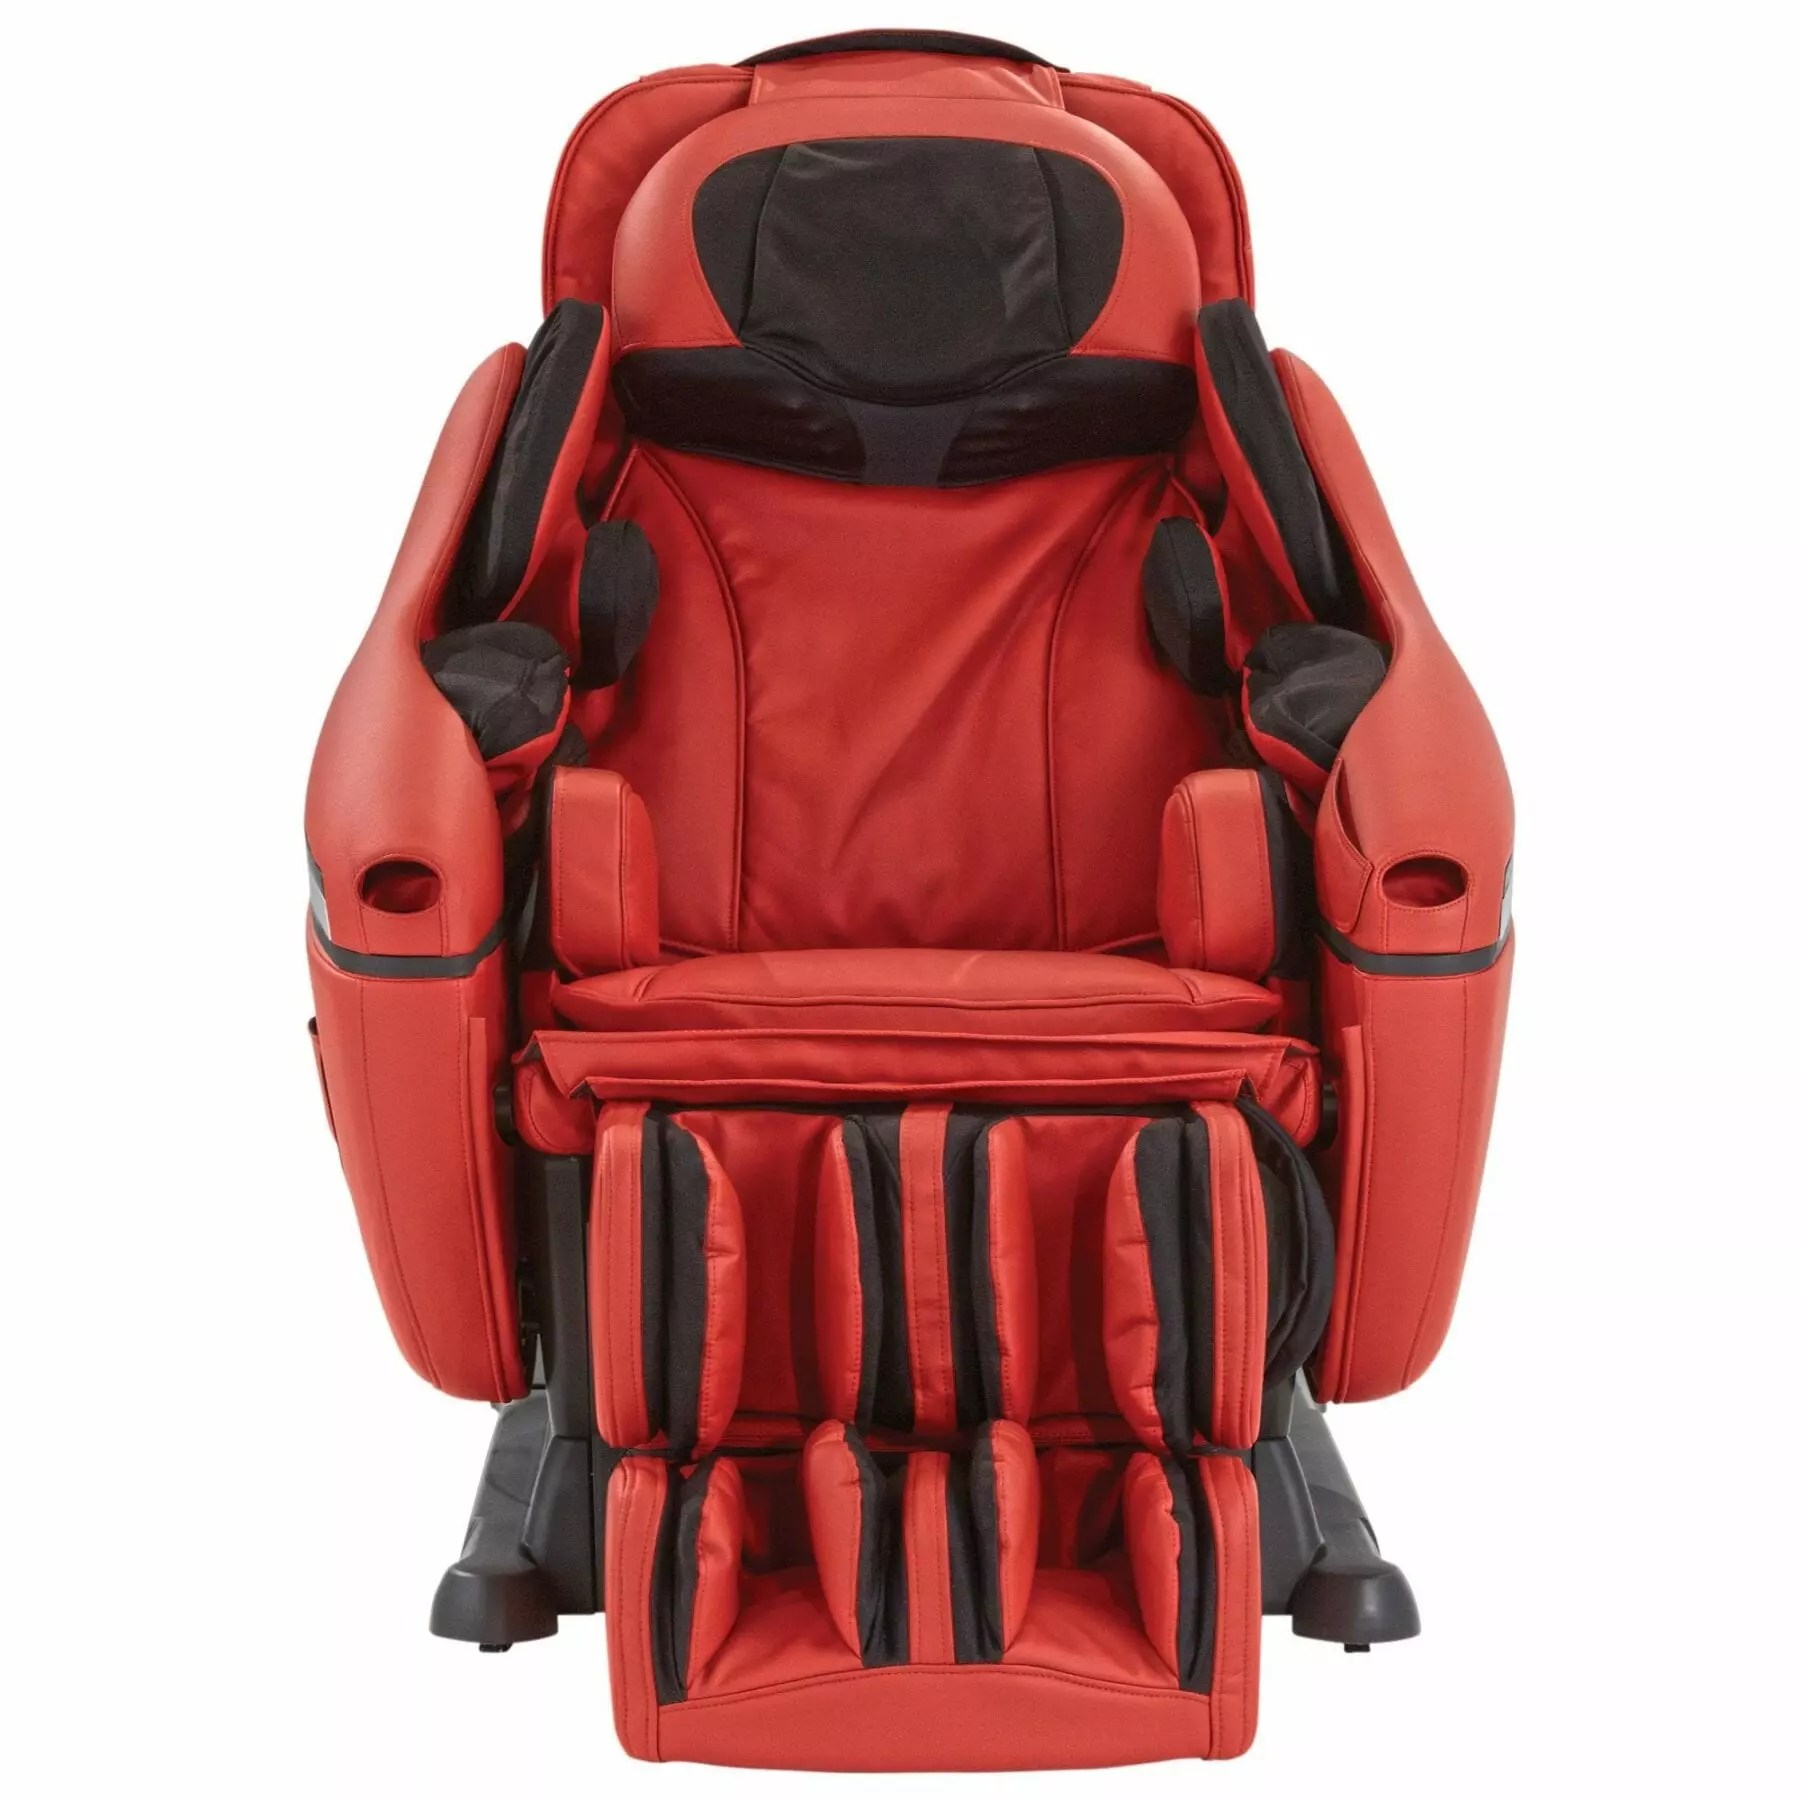 Inada Dreamwave Massage Chair Dreamwave Considered The World 39s Best Massage Chair